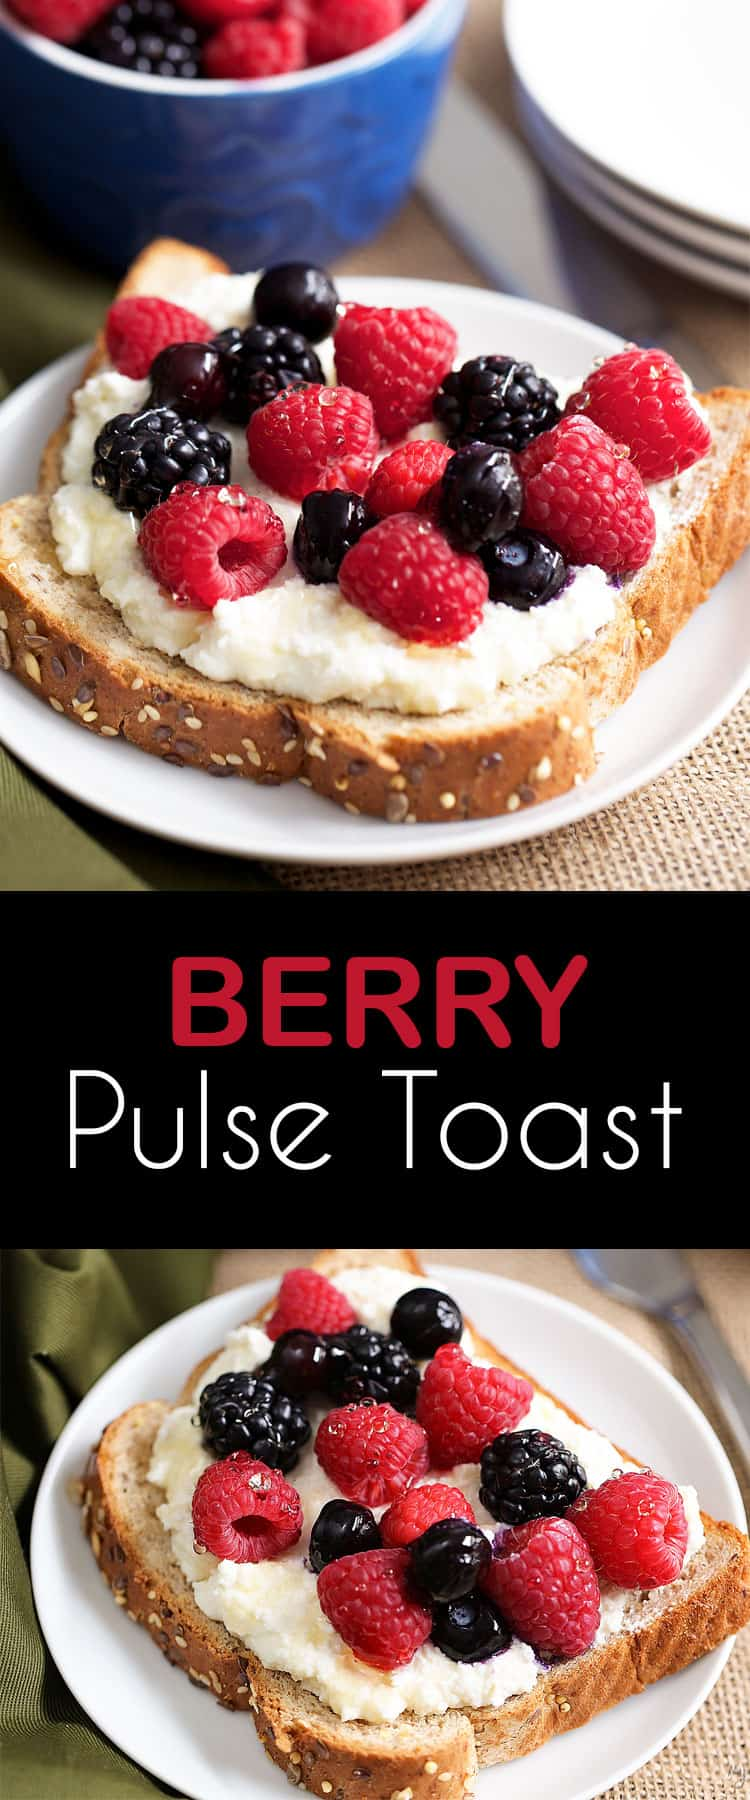 sunrise power berry pulse toast recipe